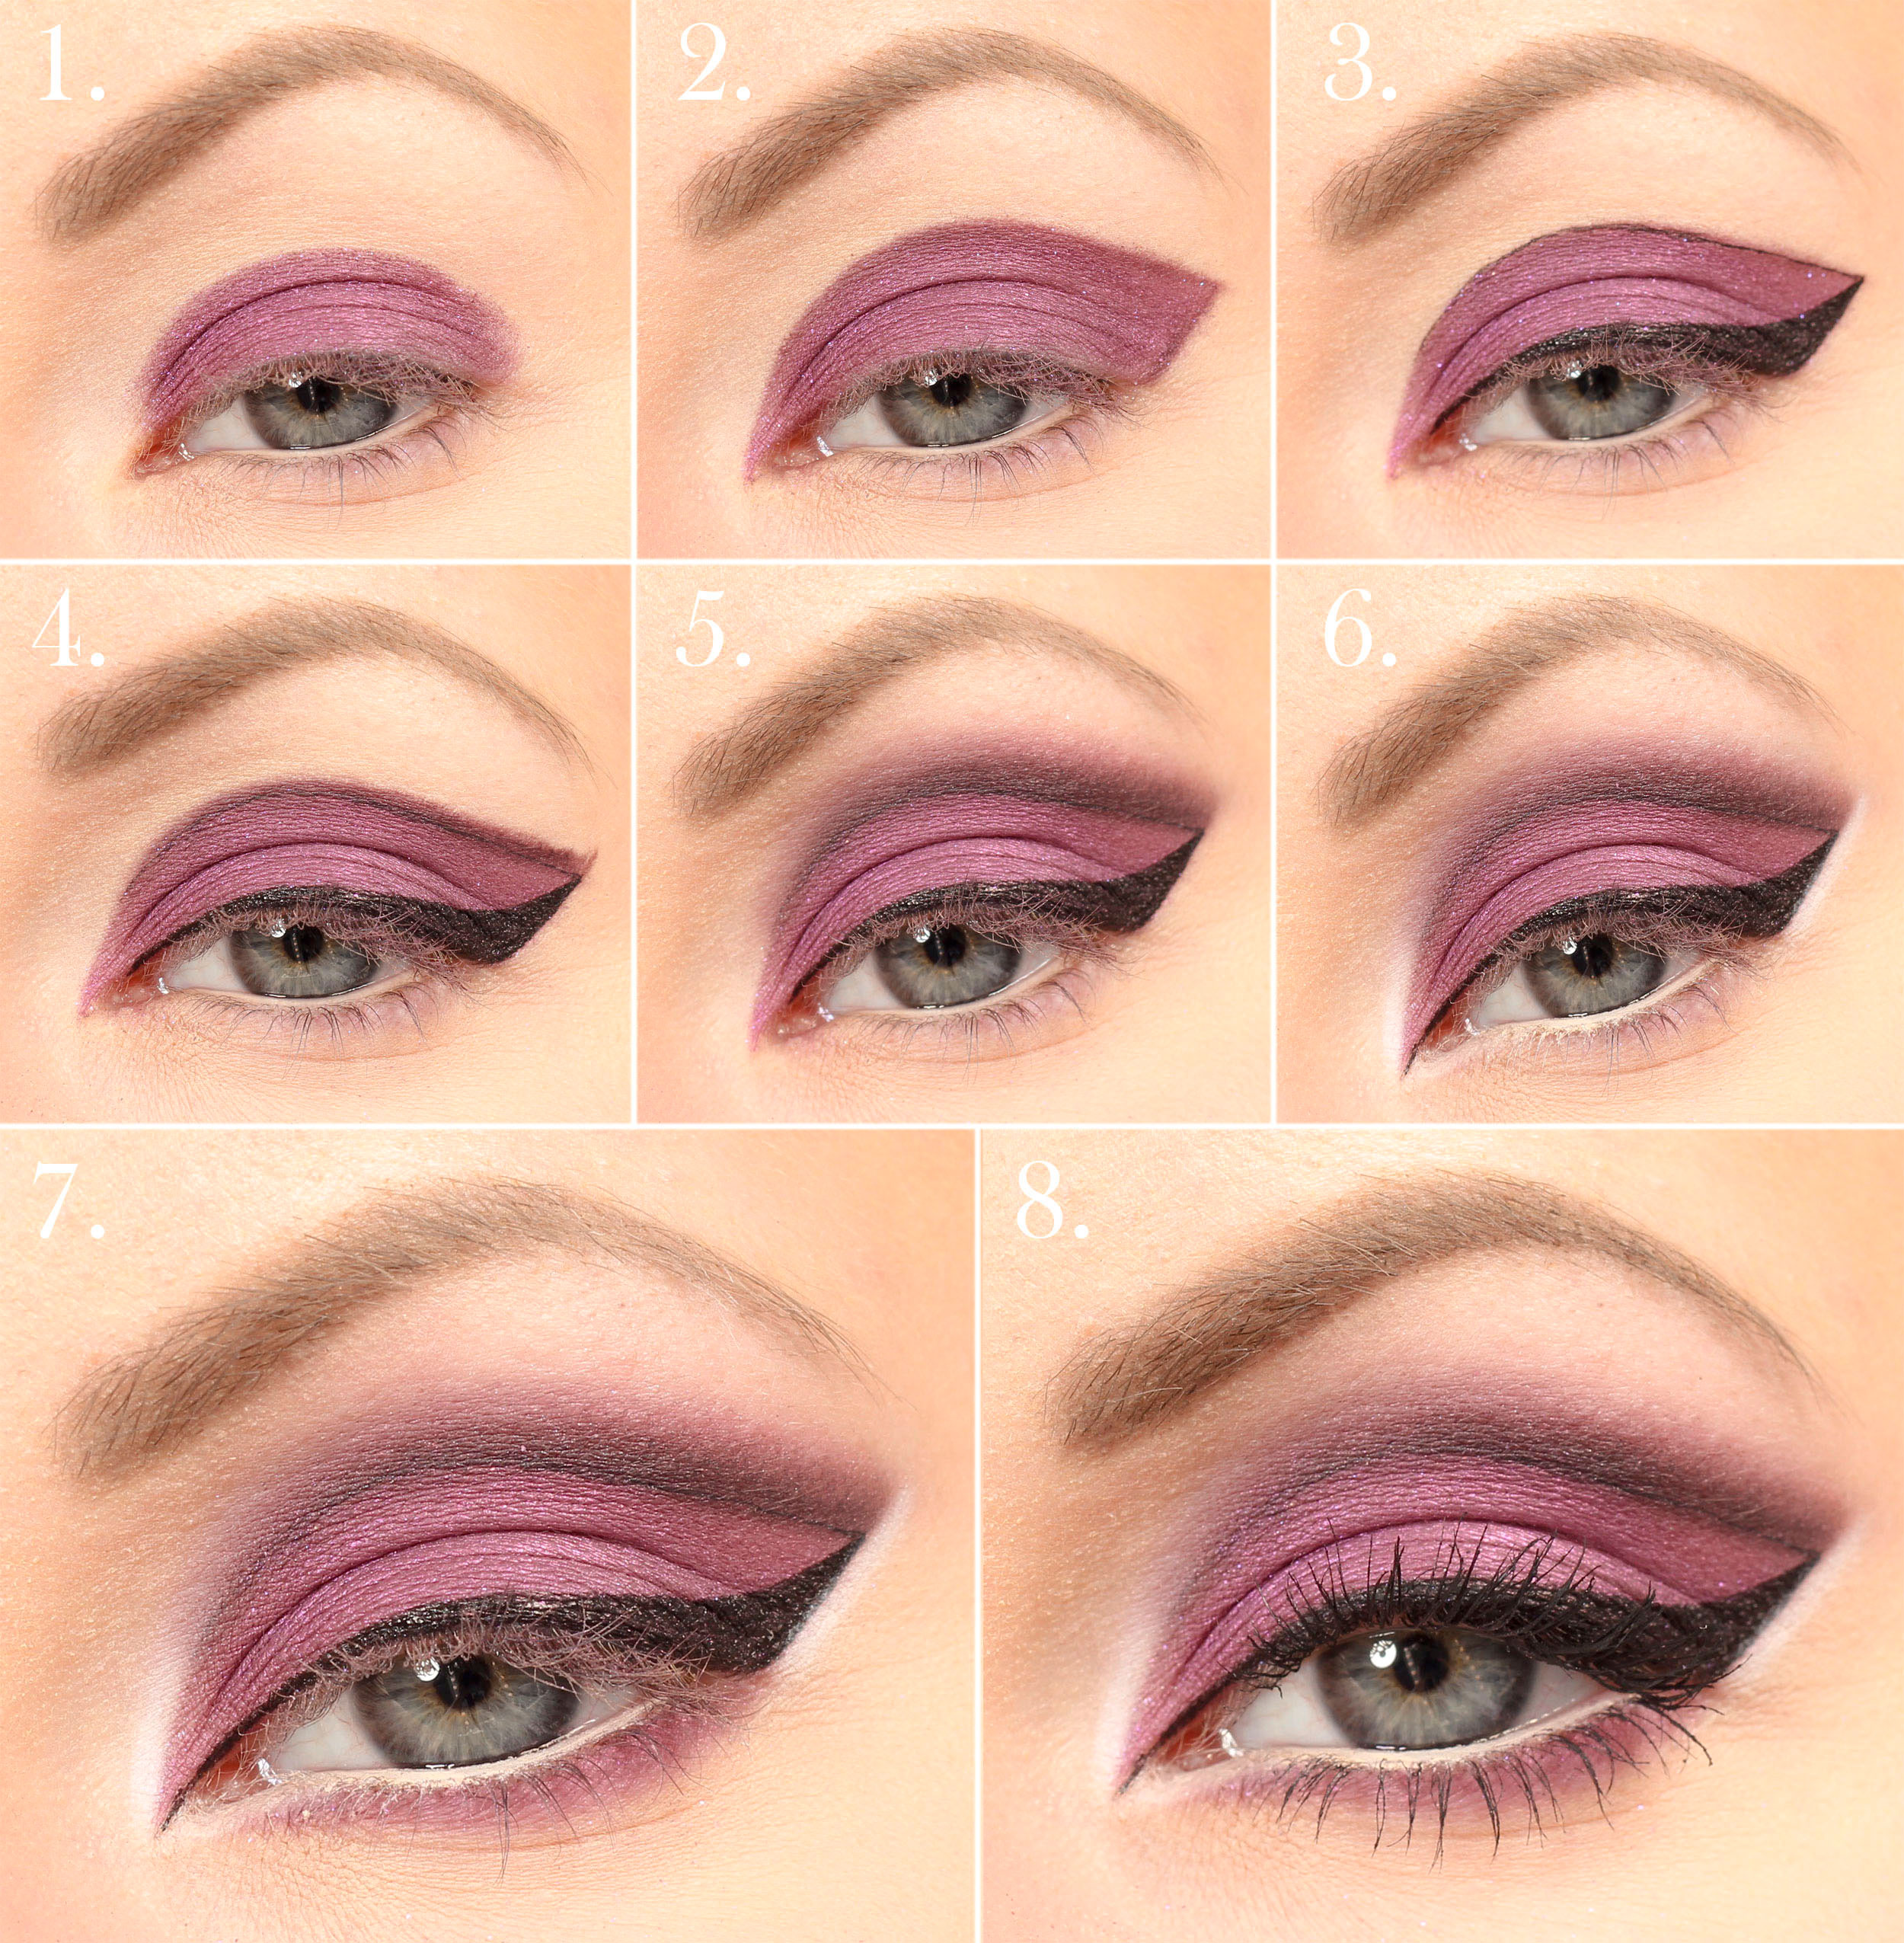 eye pictures_111